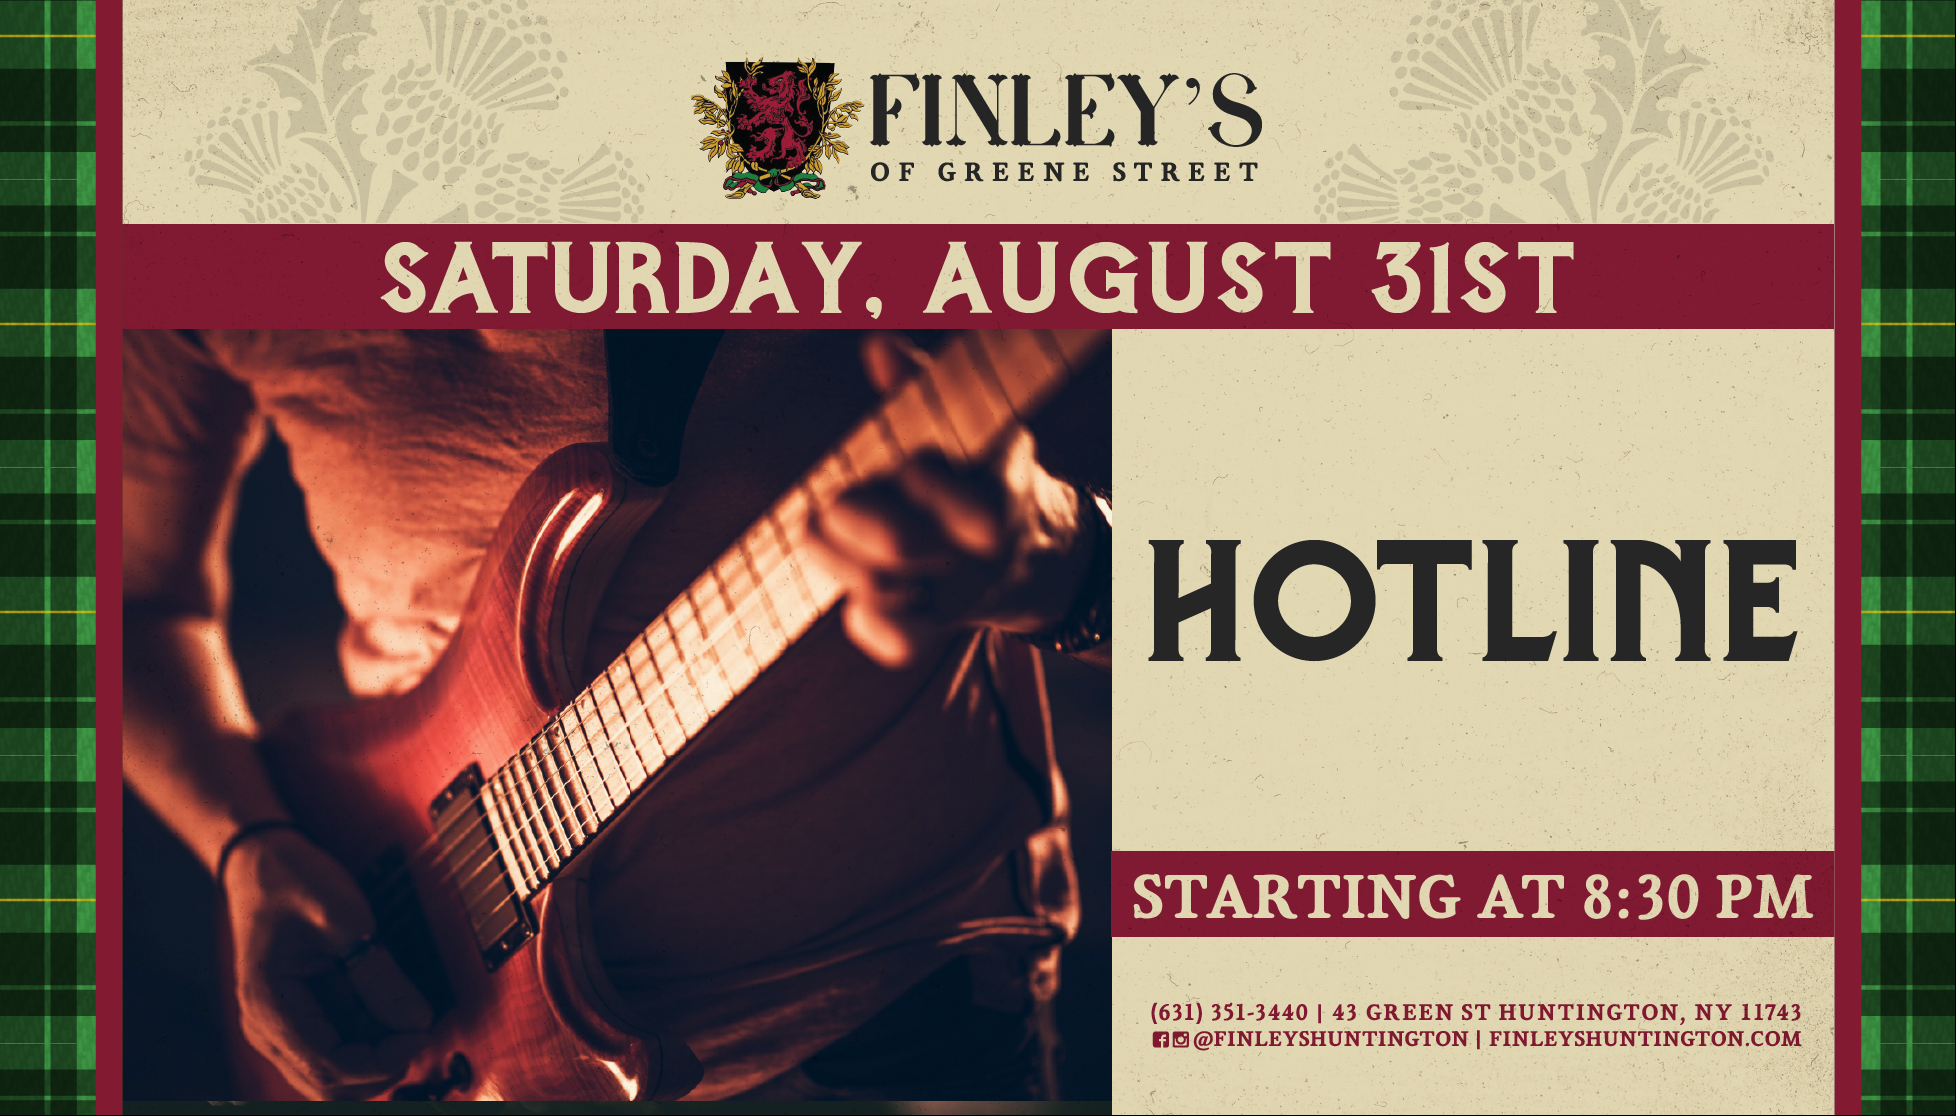 Flyer for live music with Hotline at Finley's on August 31st at 8:30pm.